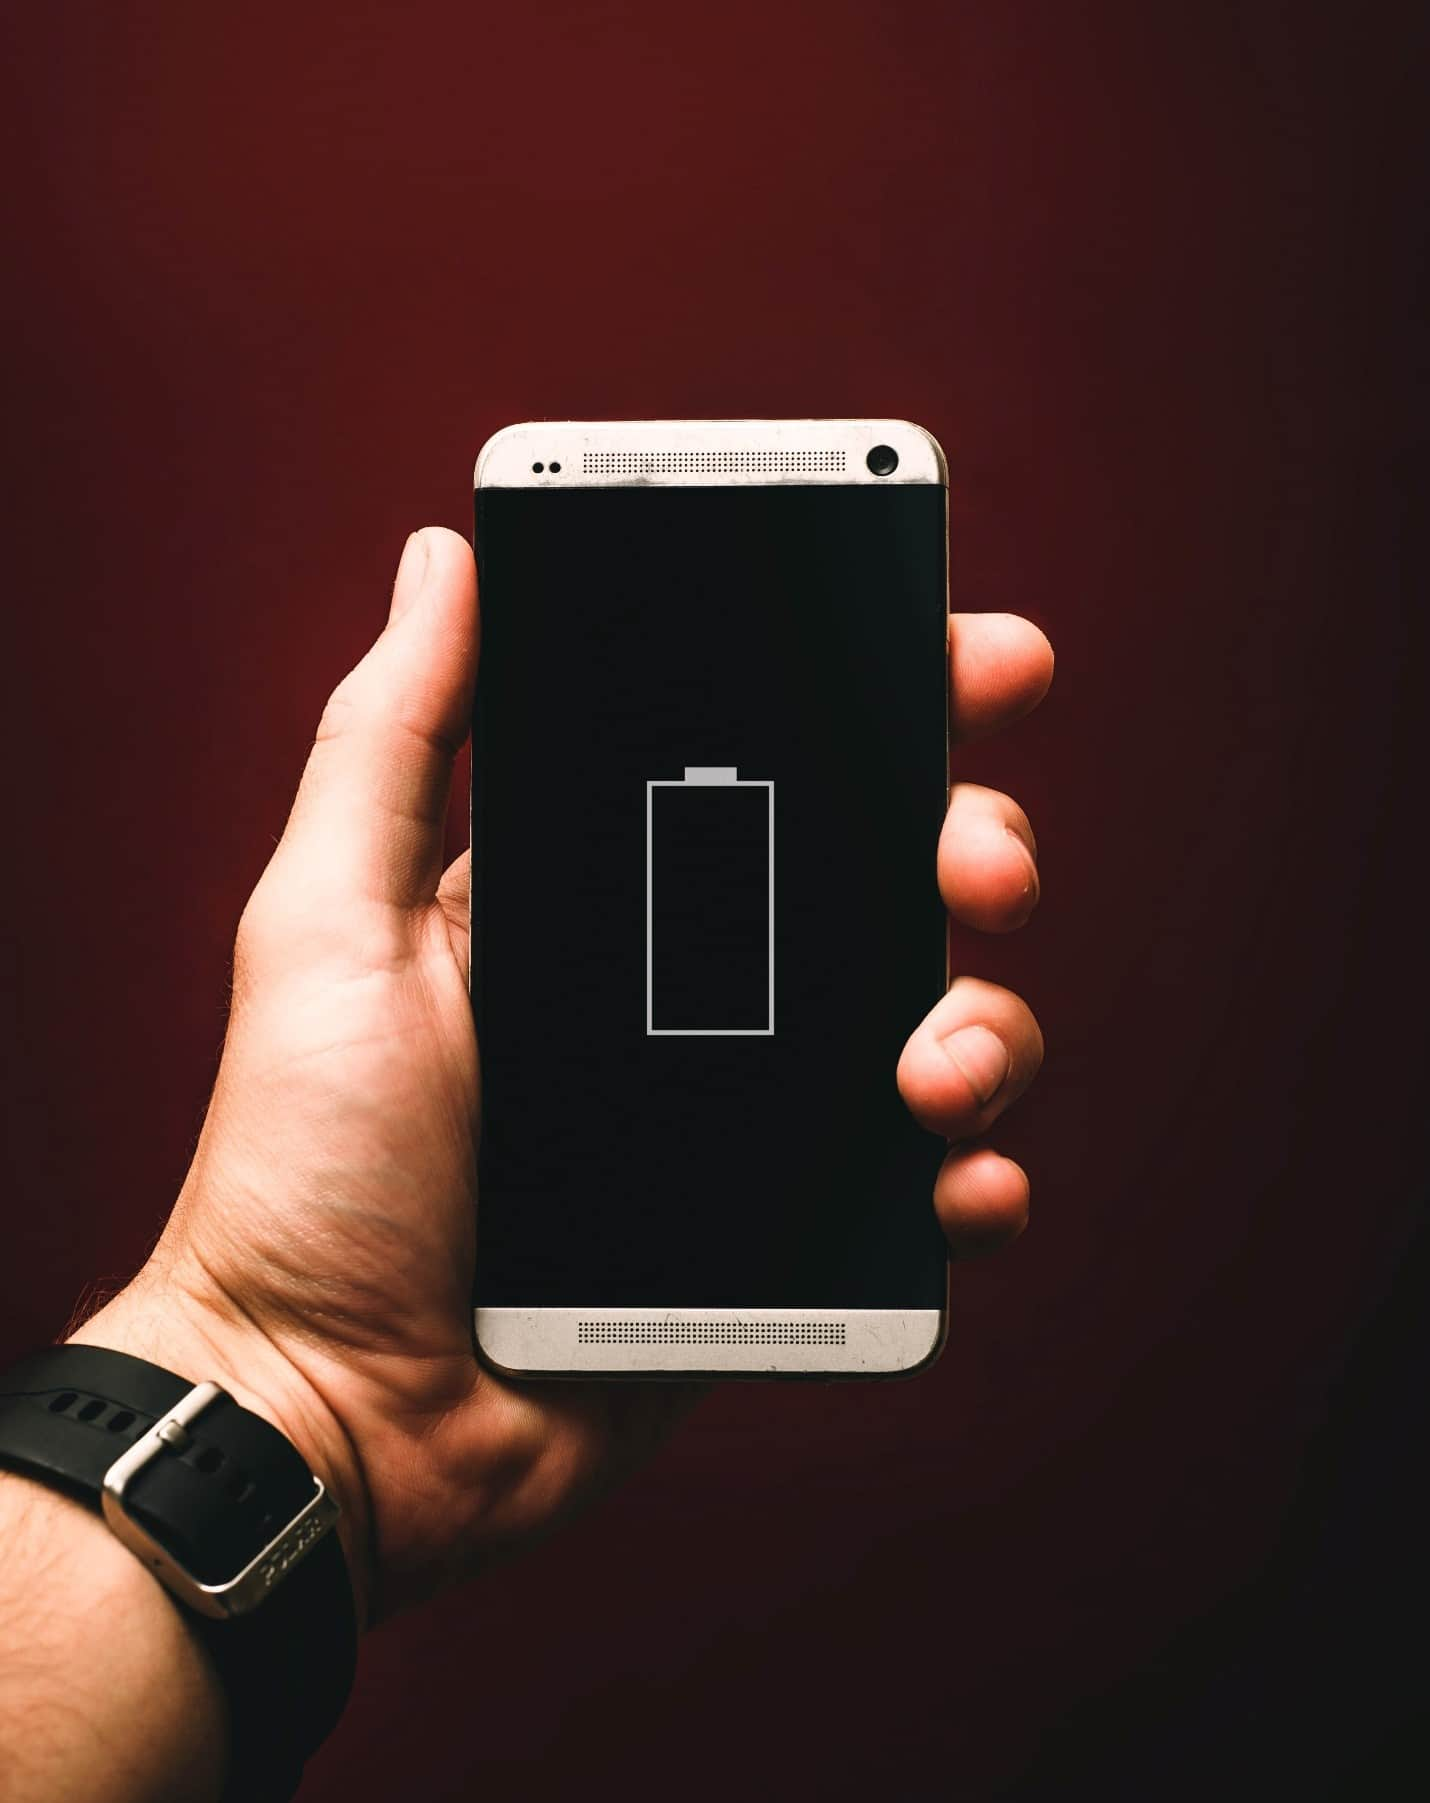 content/nb-no/images/repository/isc/2020/9910/prolong-your-smartphone-battery-lifespan-1.jpg